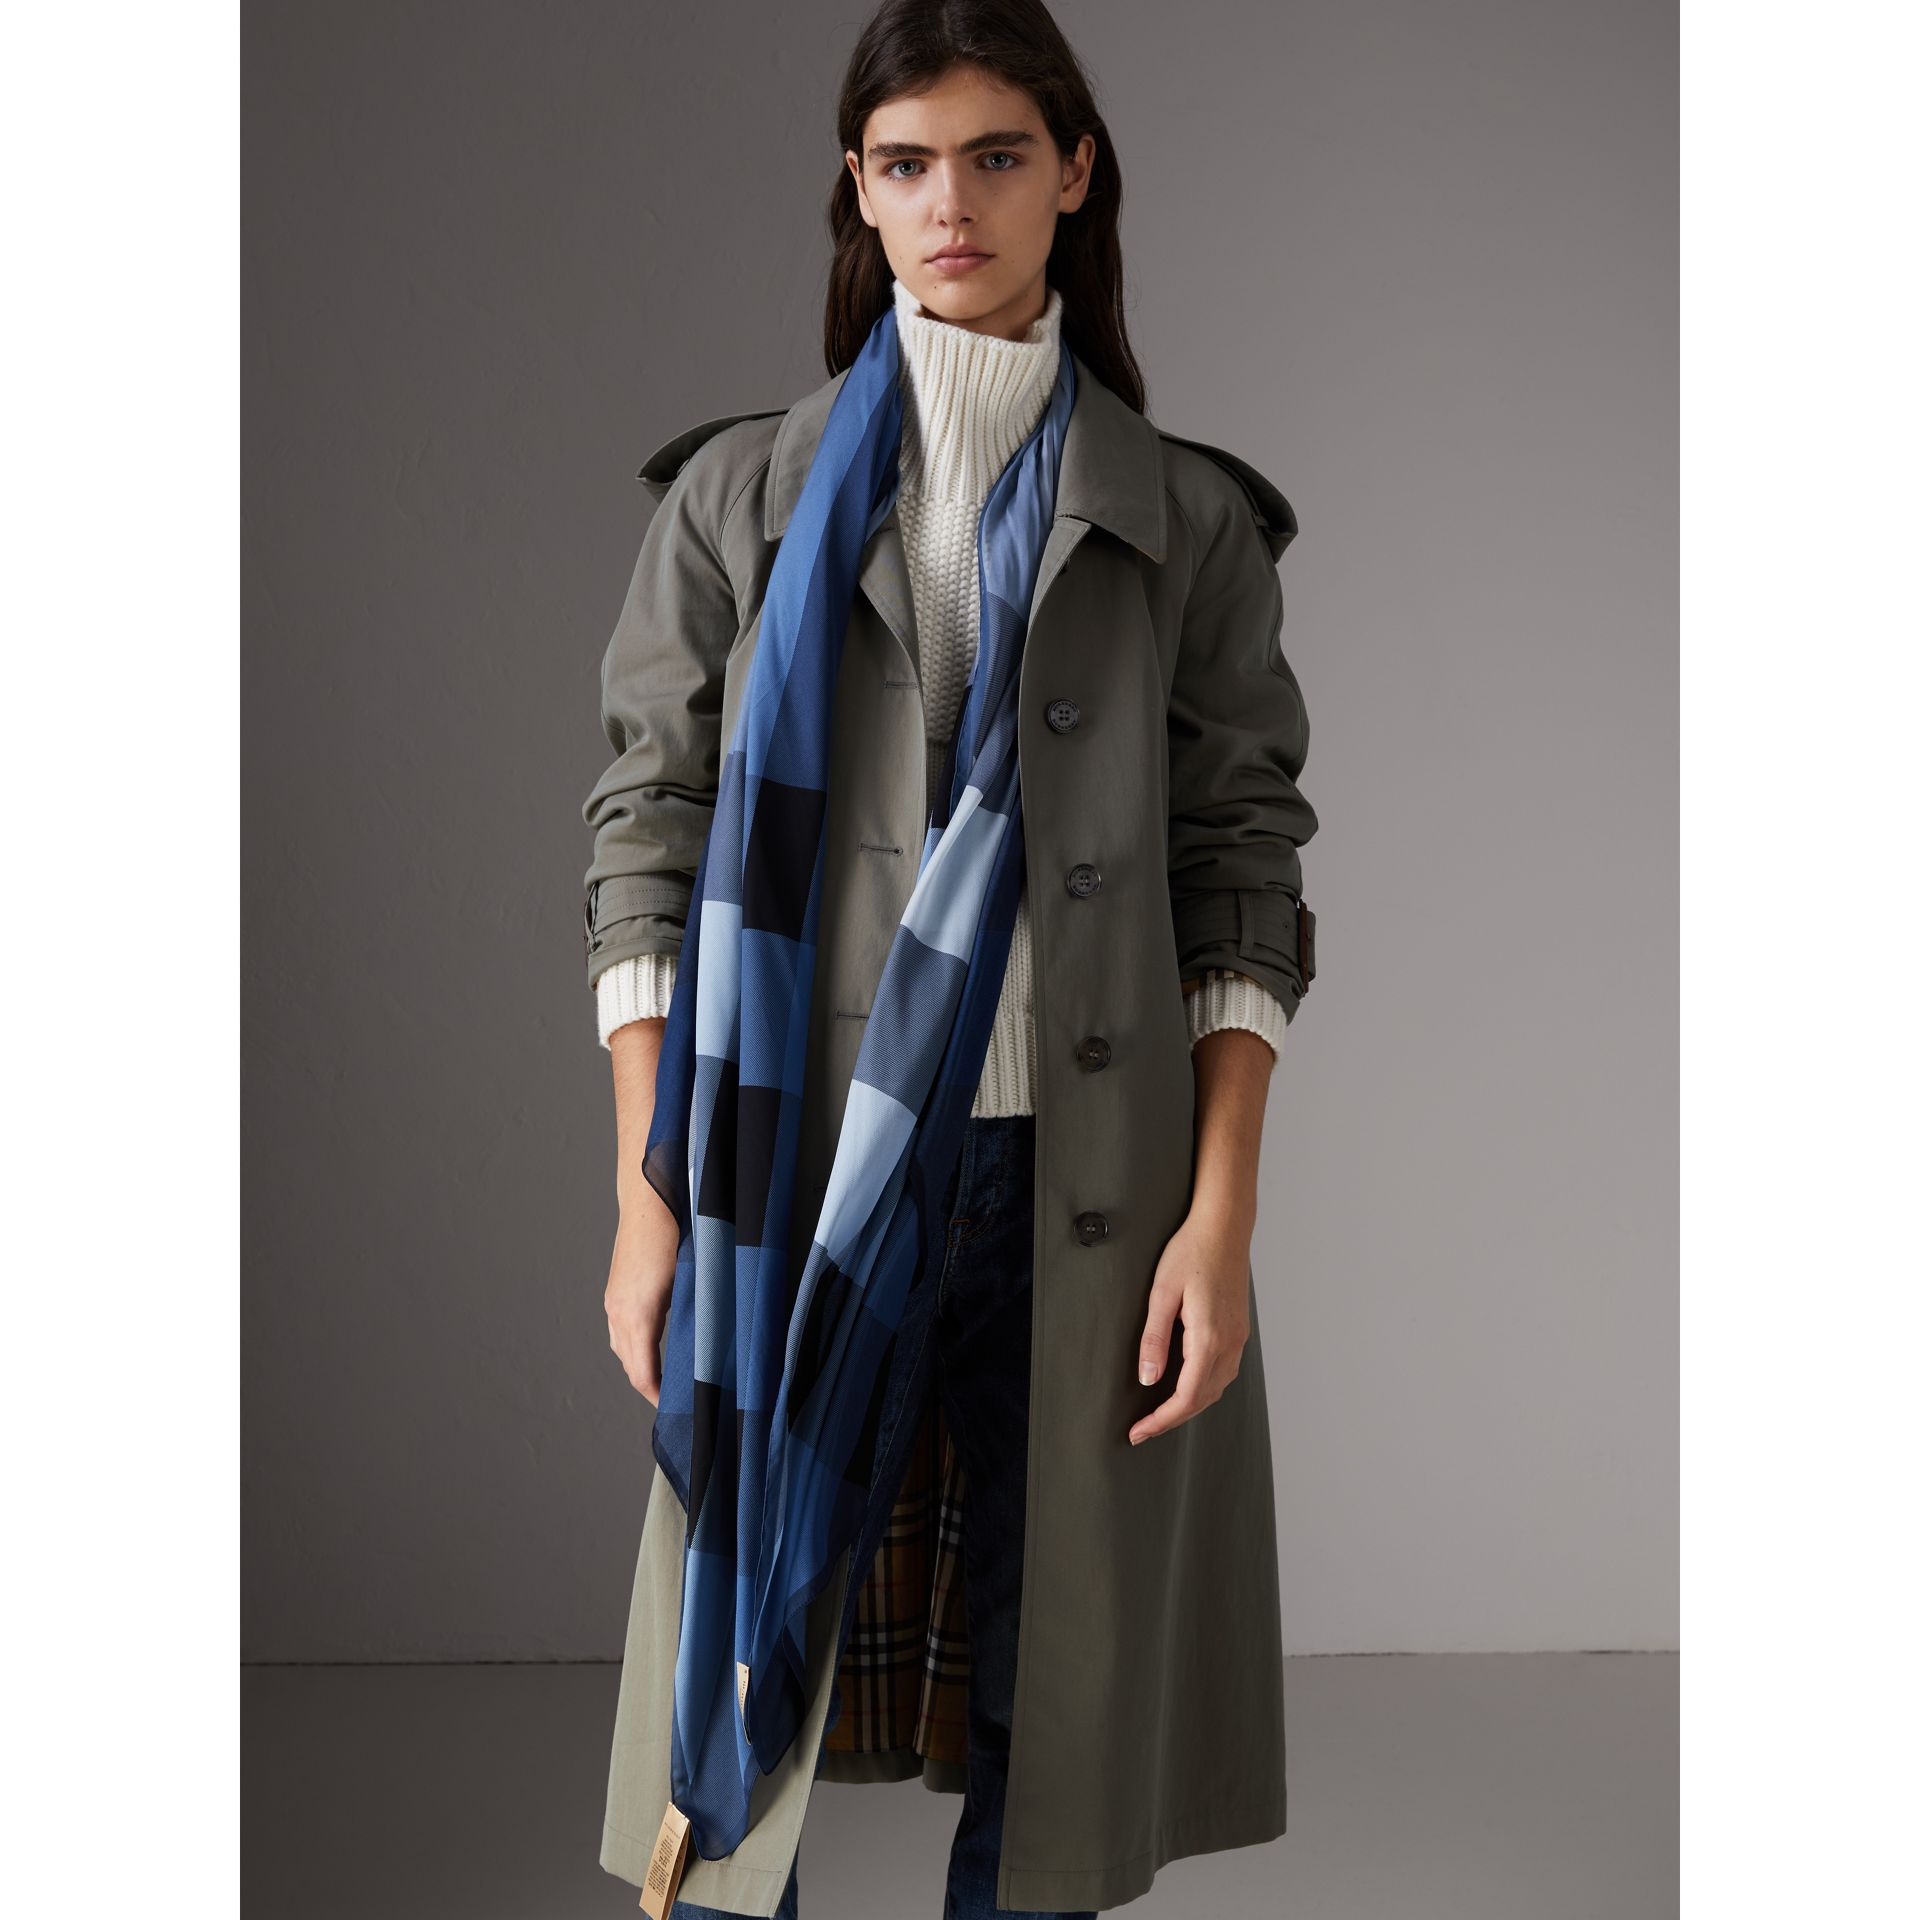 Ombré Washed Check Silk Scarf in Dusty Blue - Women | Burberry - gallery image 2